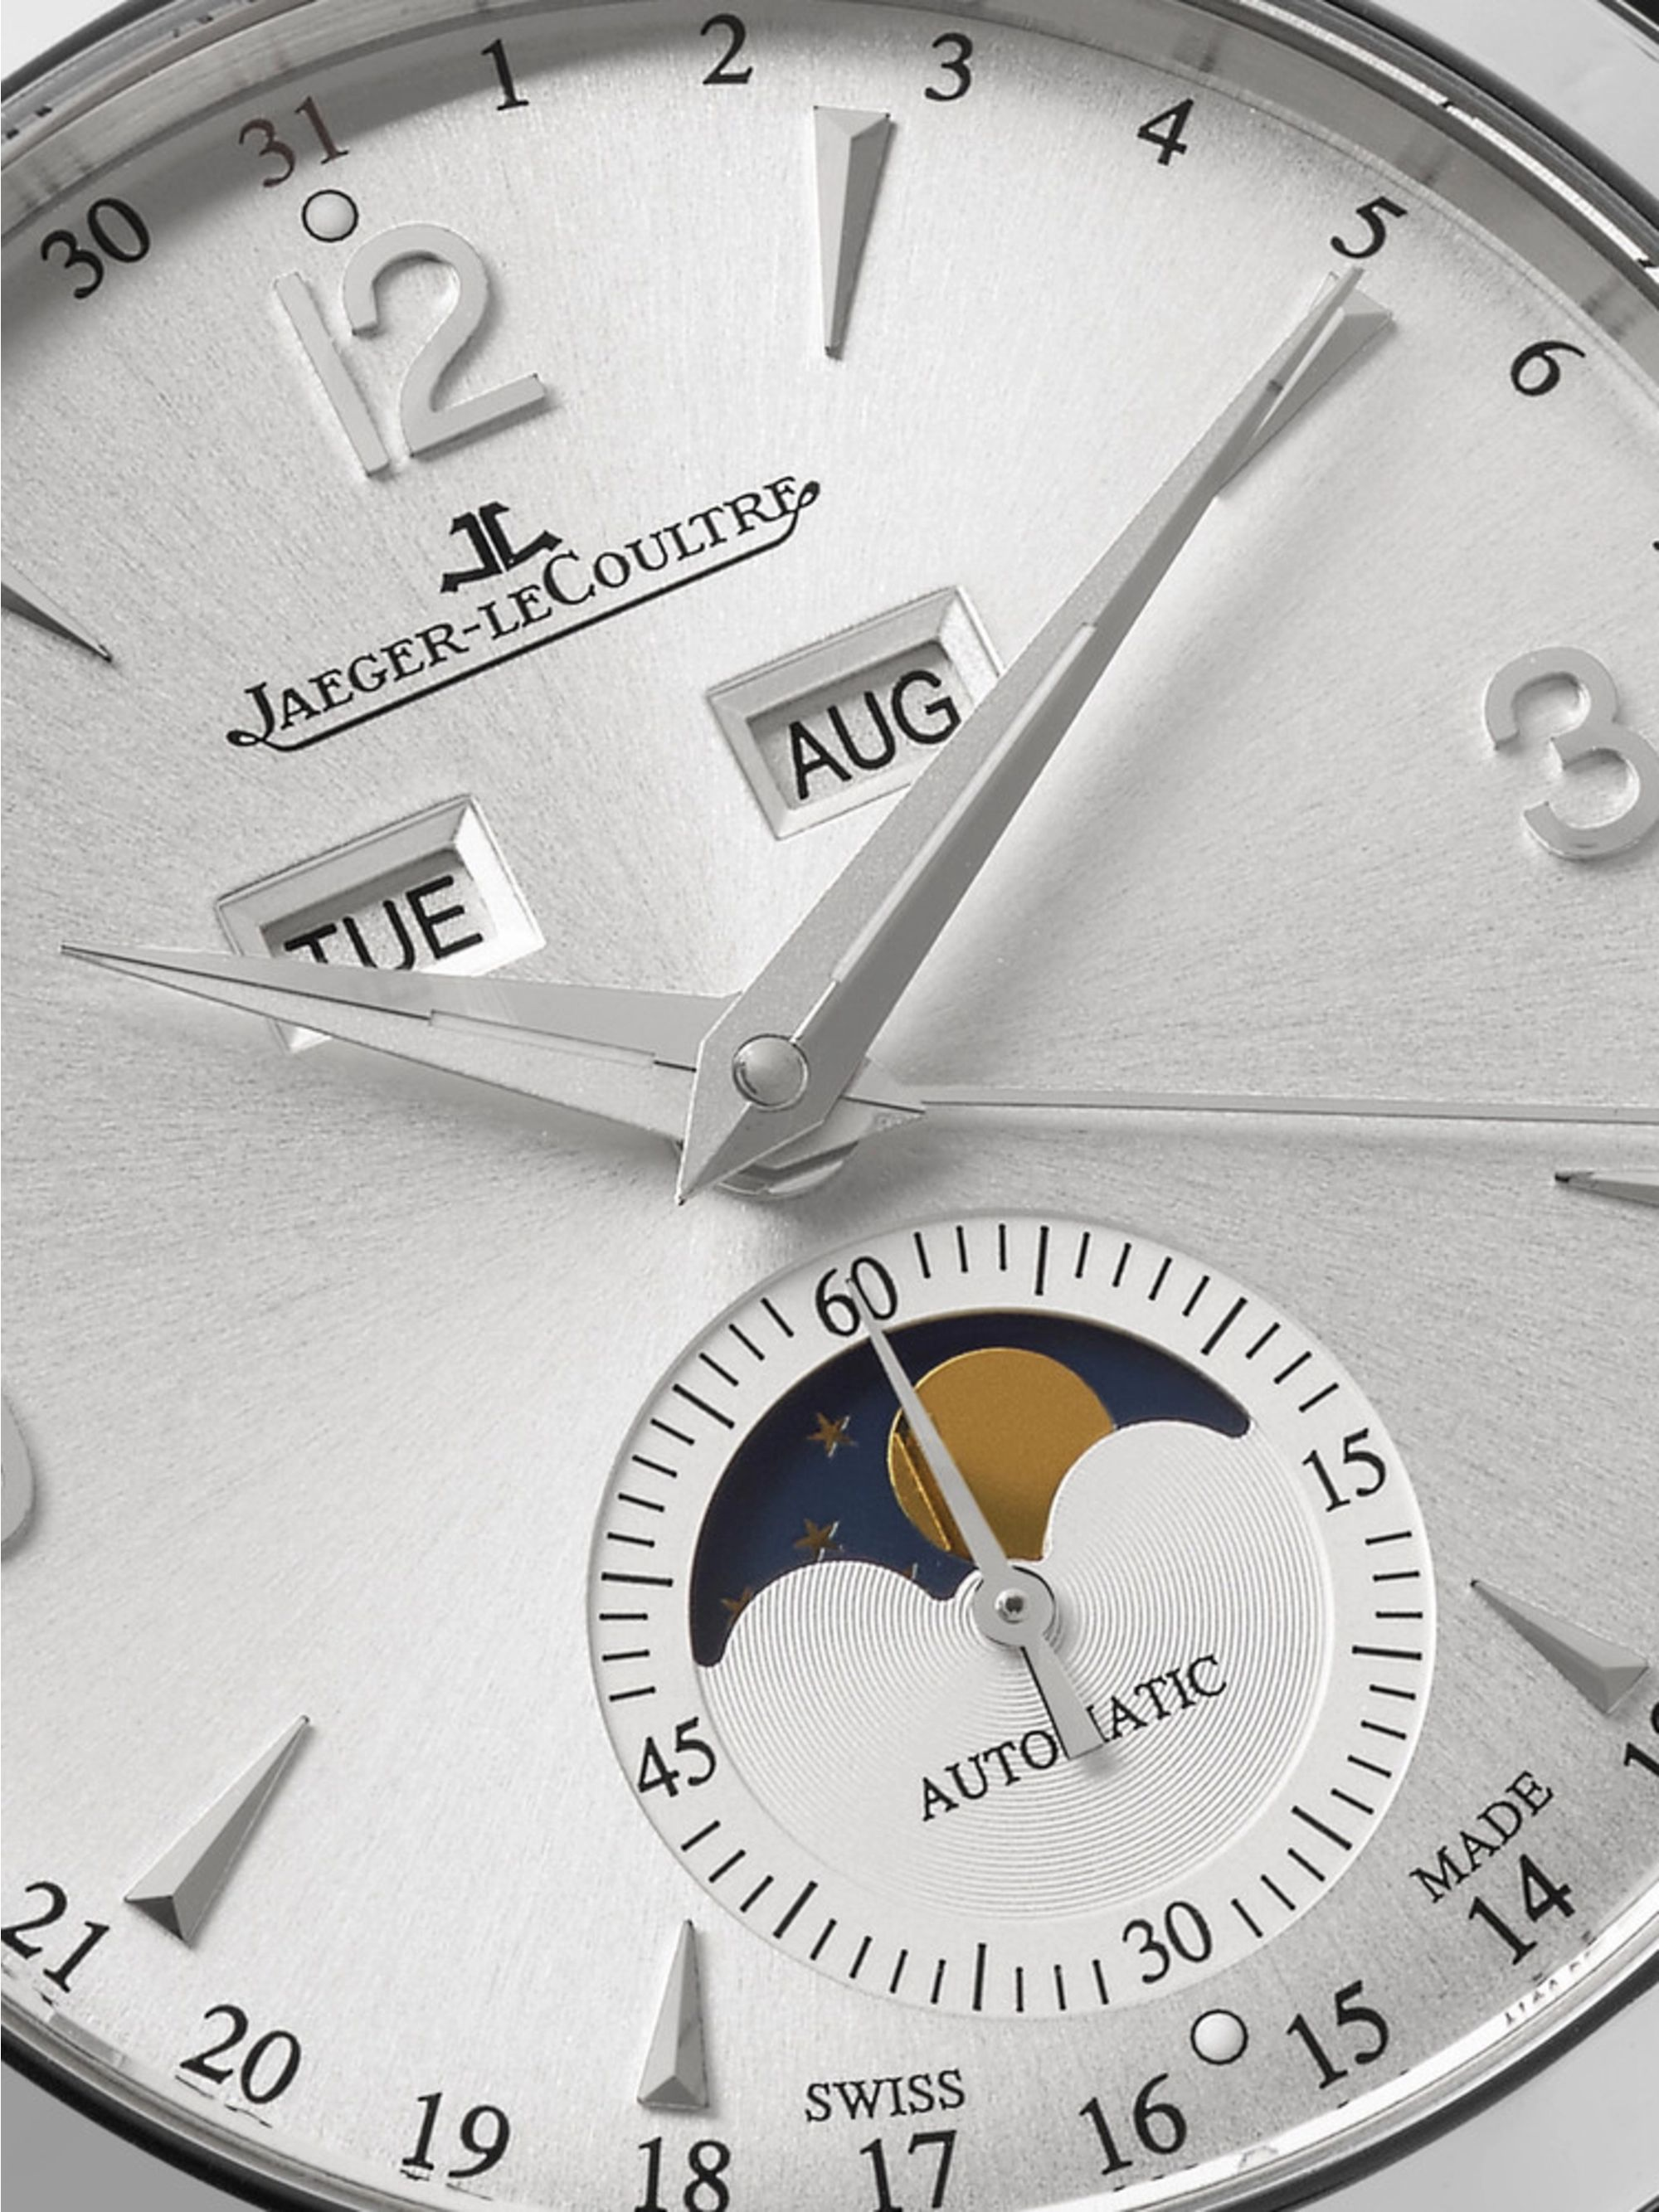 Jaeger-LeCoultre Master Calendar Automatic Stainless Steel and Alligator Watch, Ref. No. Q1558420